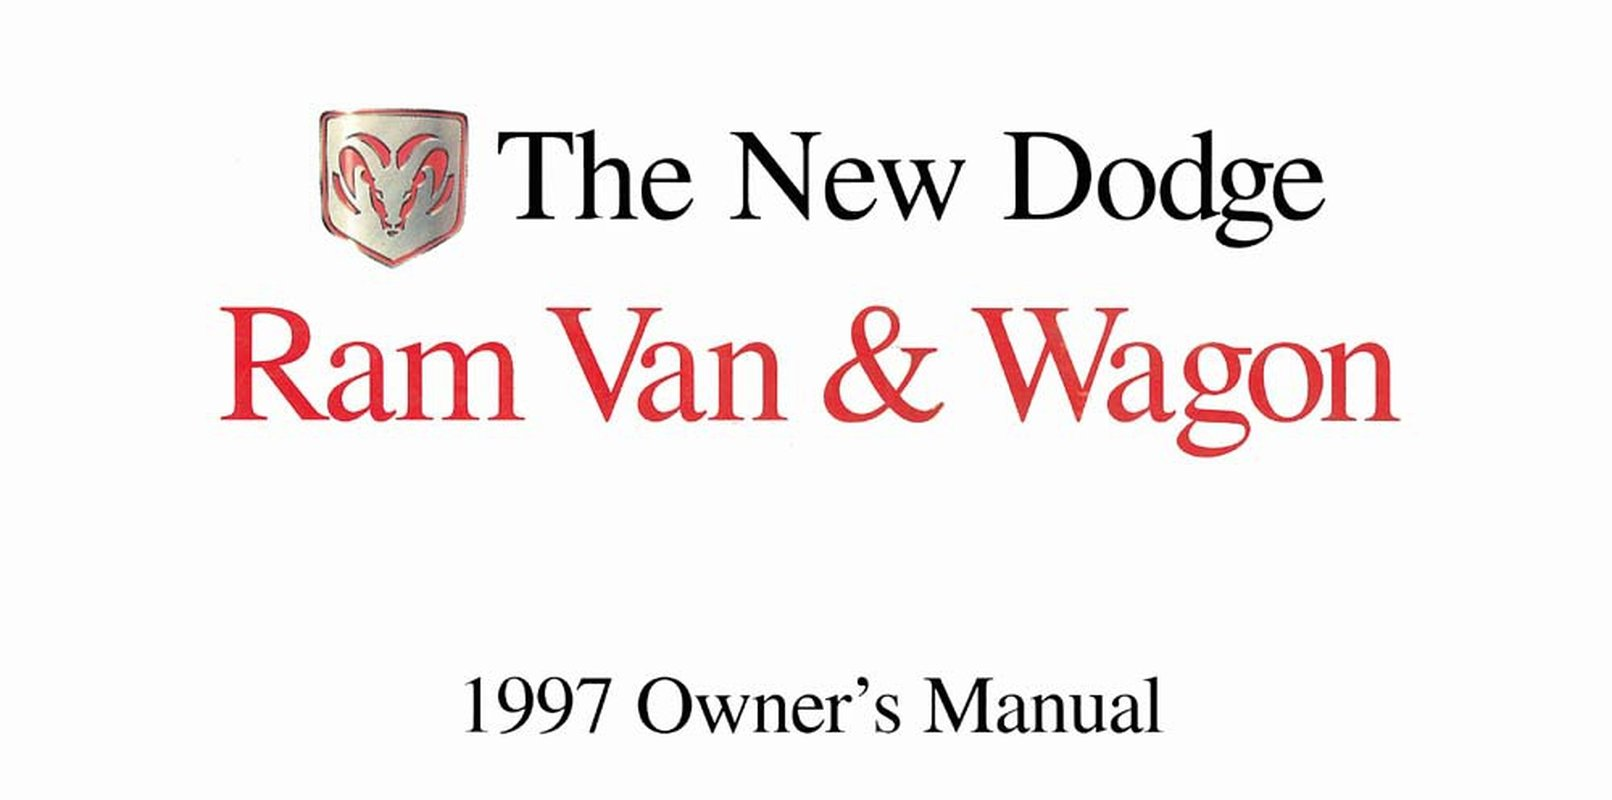 OEM Repair Maintenance Owner's Manual Bound for Dodge Truck Ram Van & Wagon  1997